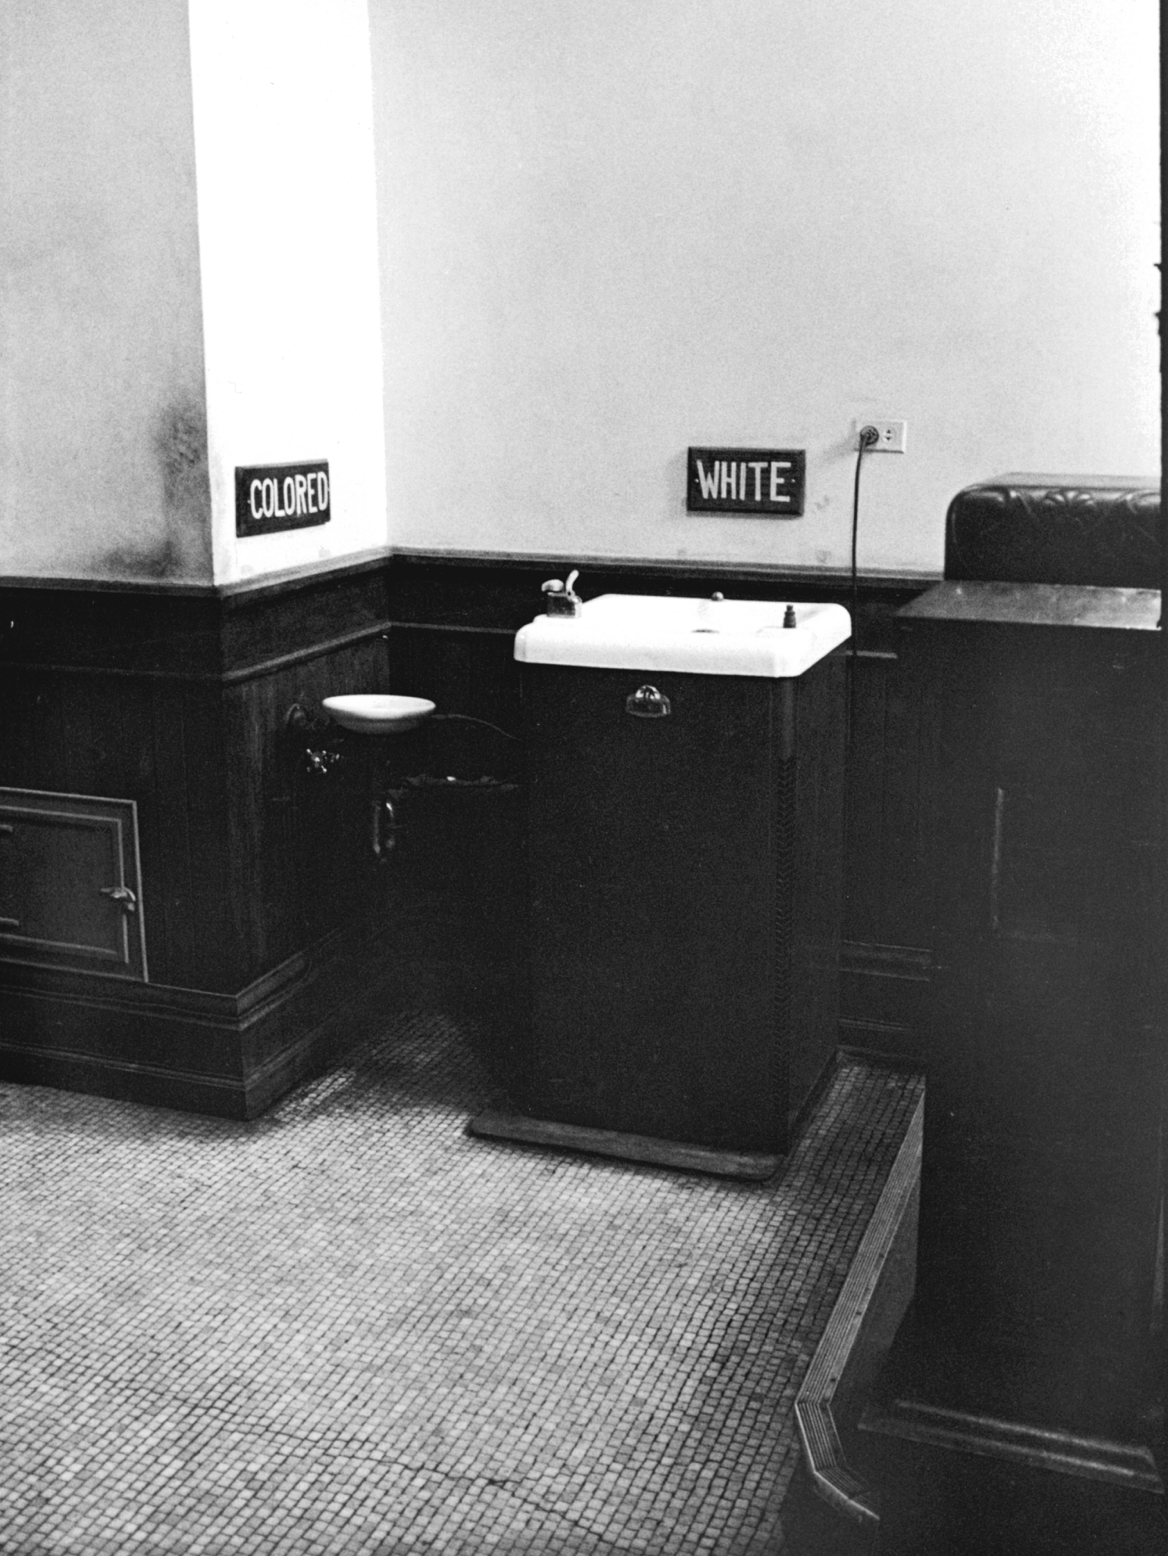 Photo of segregated drinking fountains in Albany, Georgia, 1962 - Courtesy of Delaware Art Museum